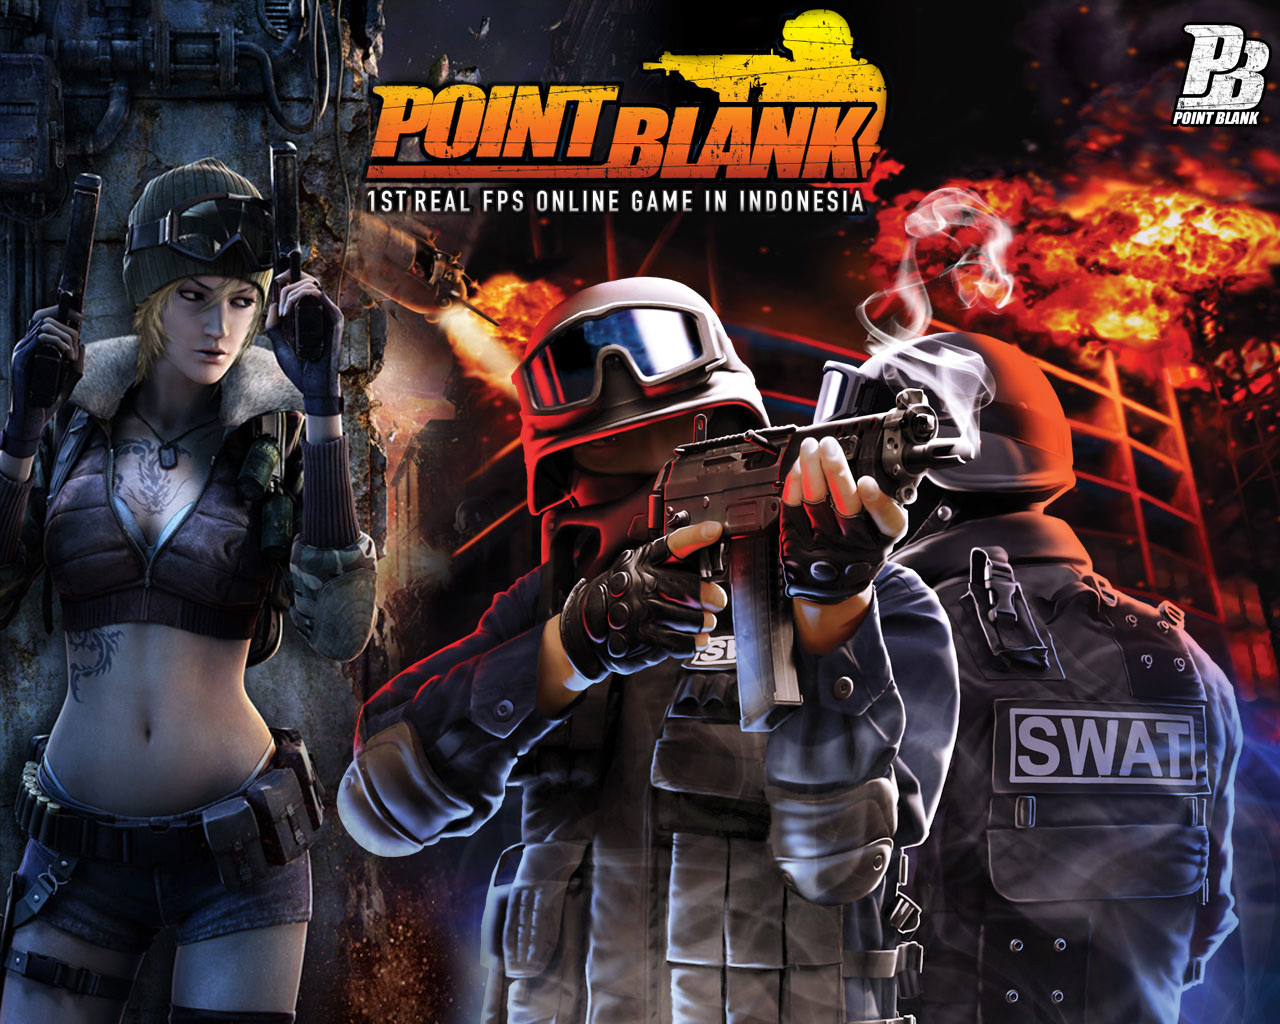 Download-Cheat-Point-Blank-4-Februari-2012.jpg